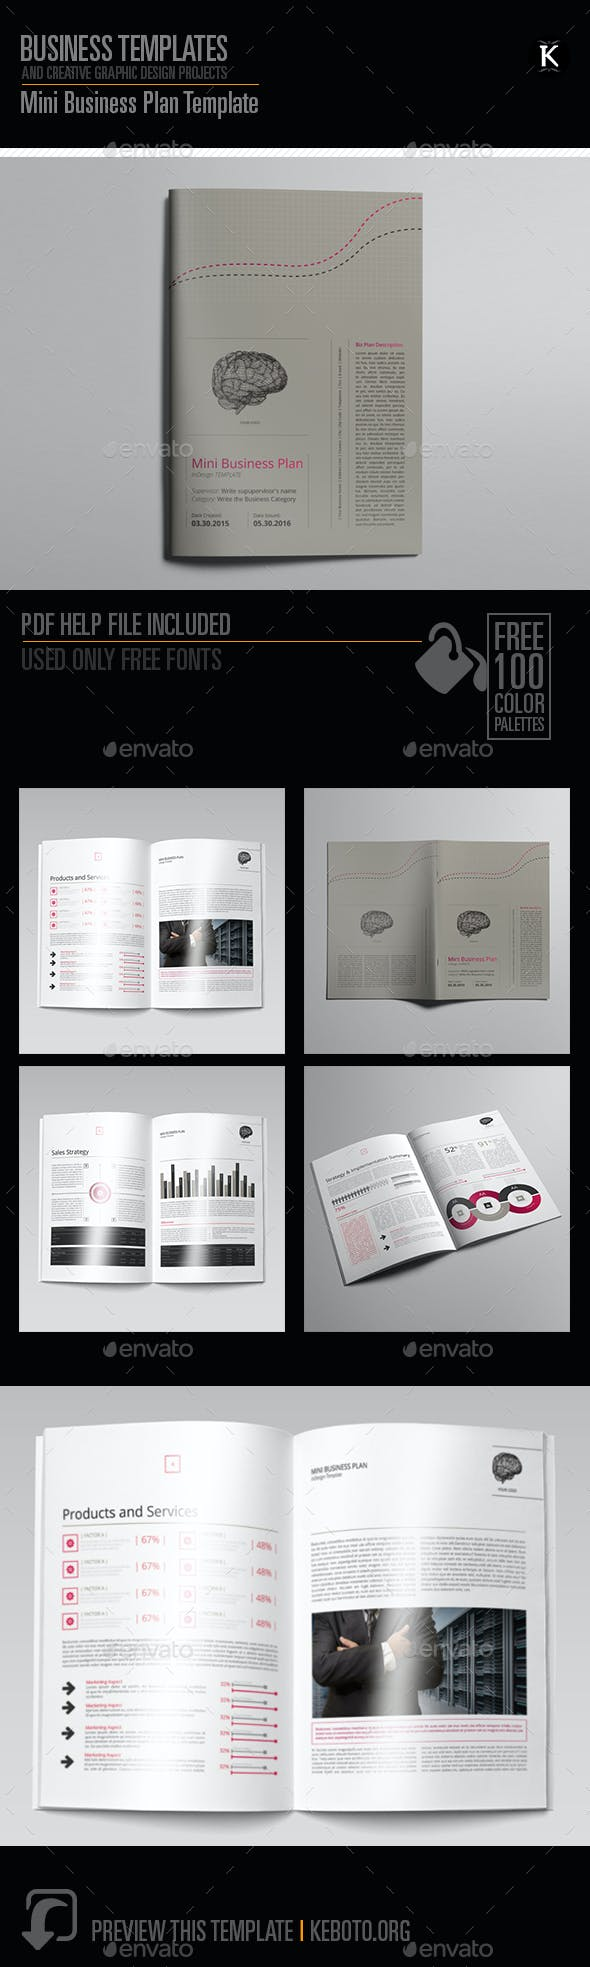 mini business plan template miscellaneous print templates